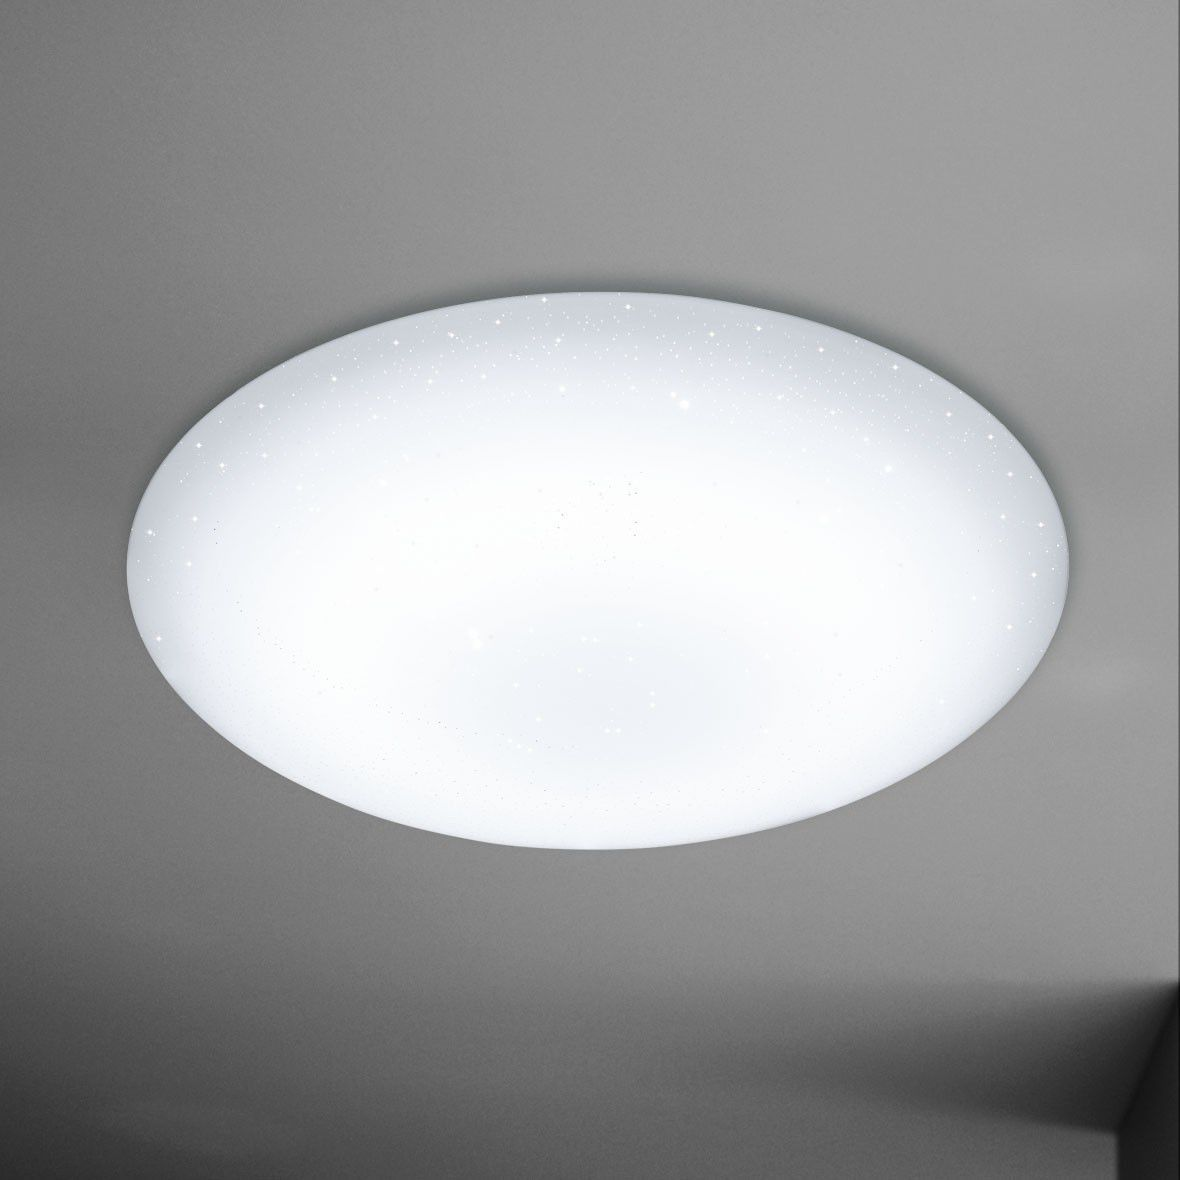 Contemporary ceiling light / round / glass / LED - CERES 1LMP - WOFI ...